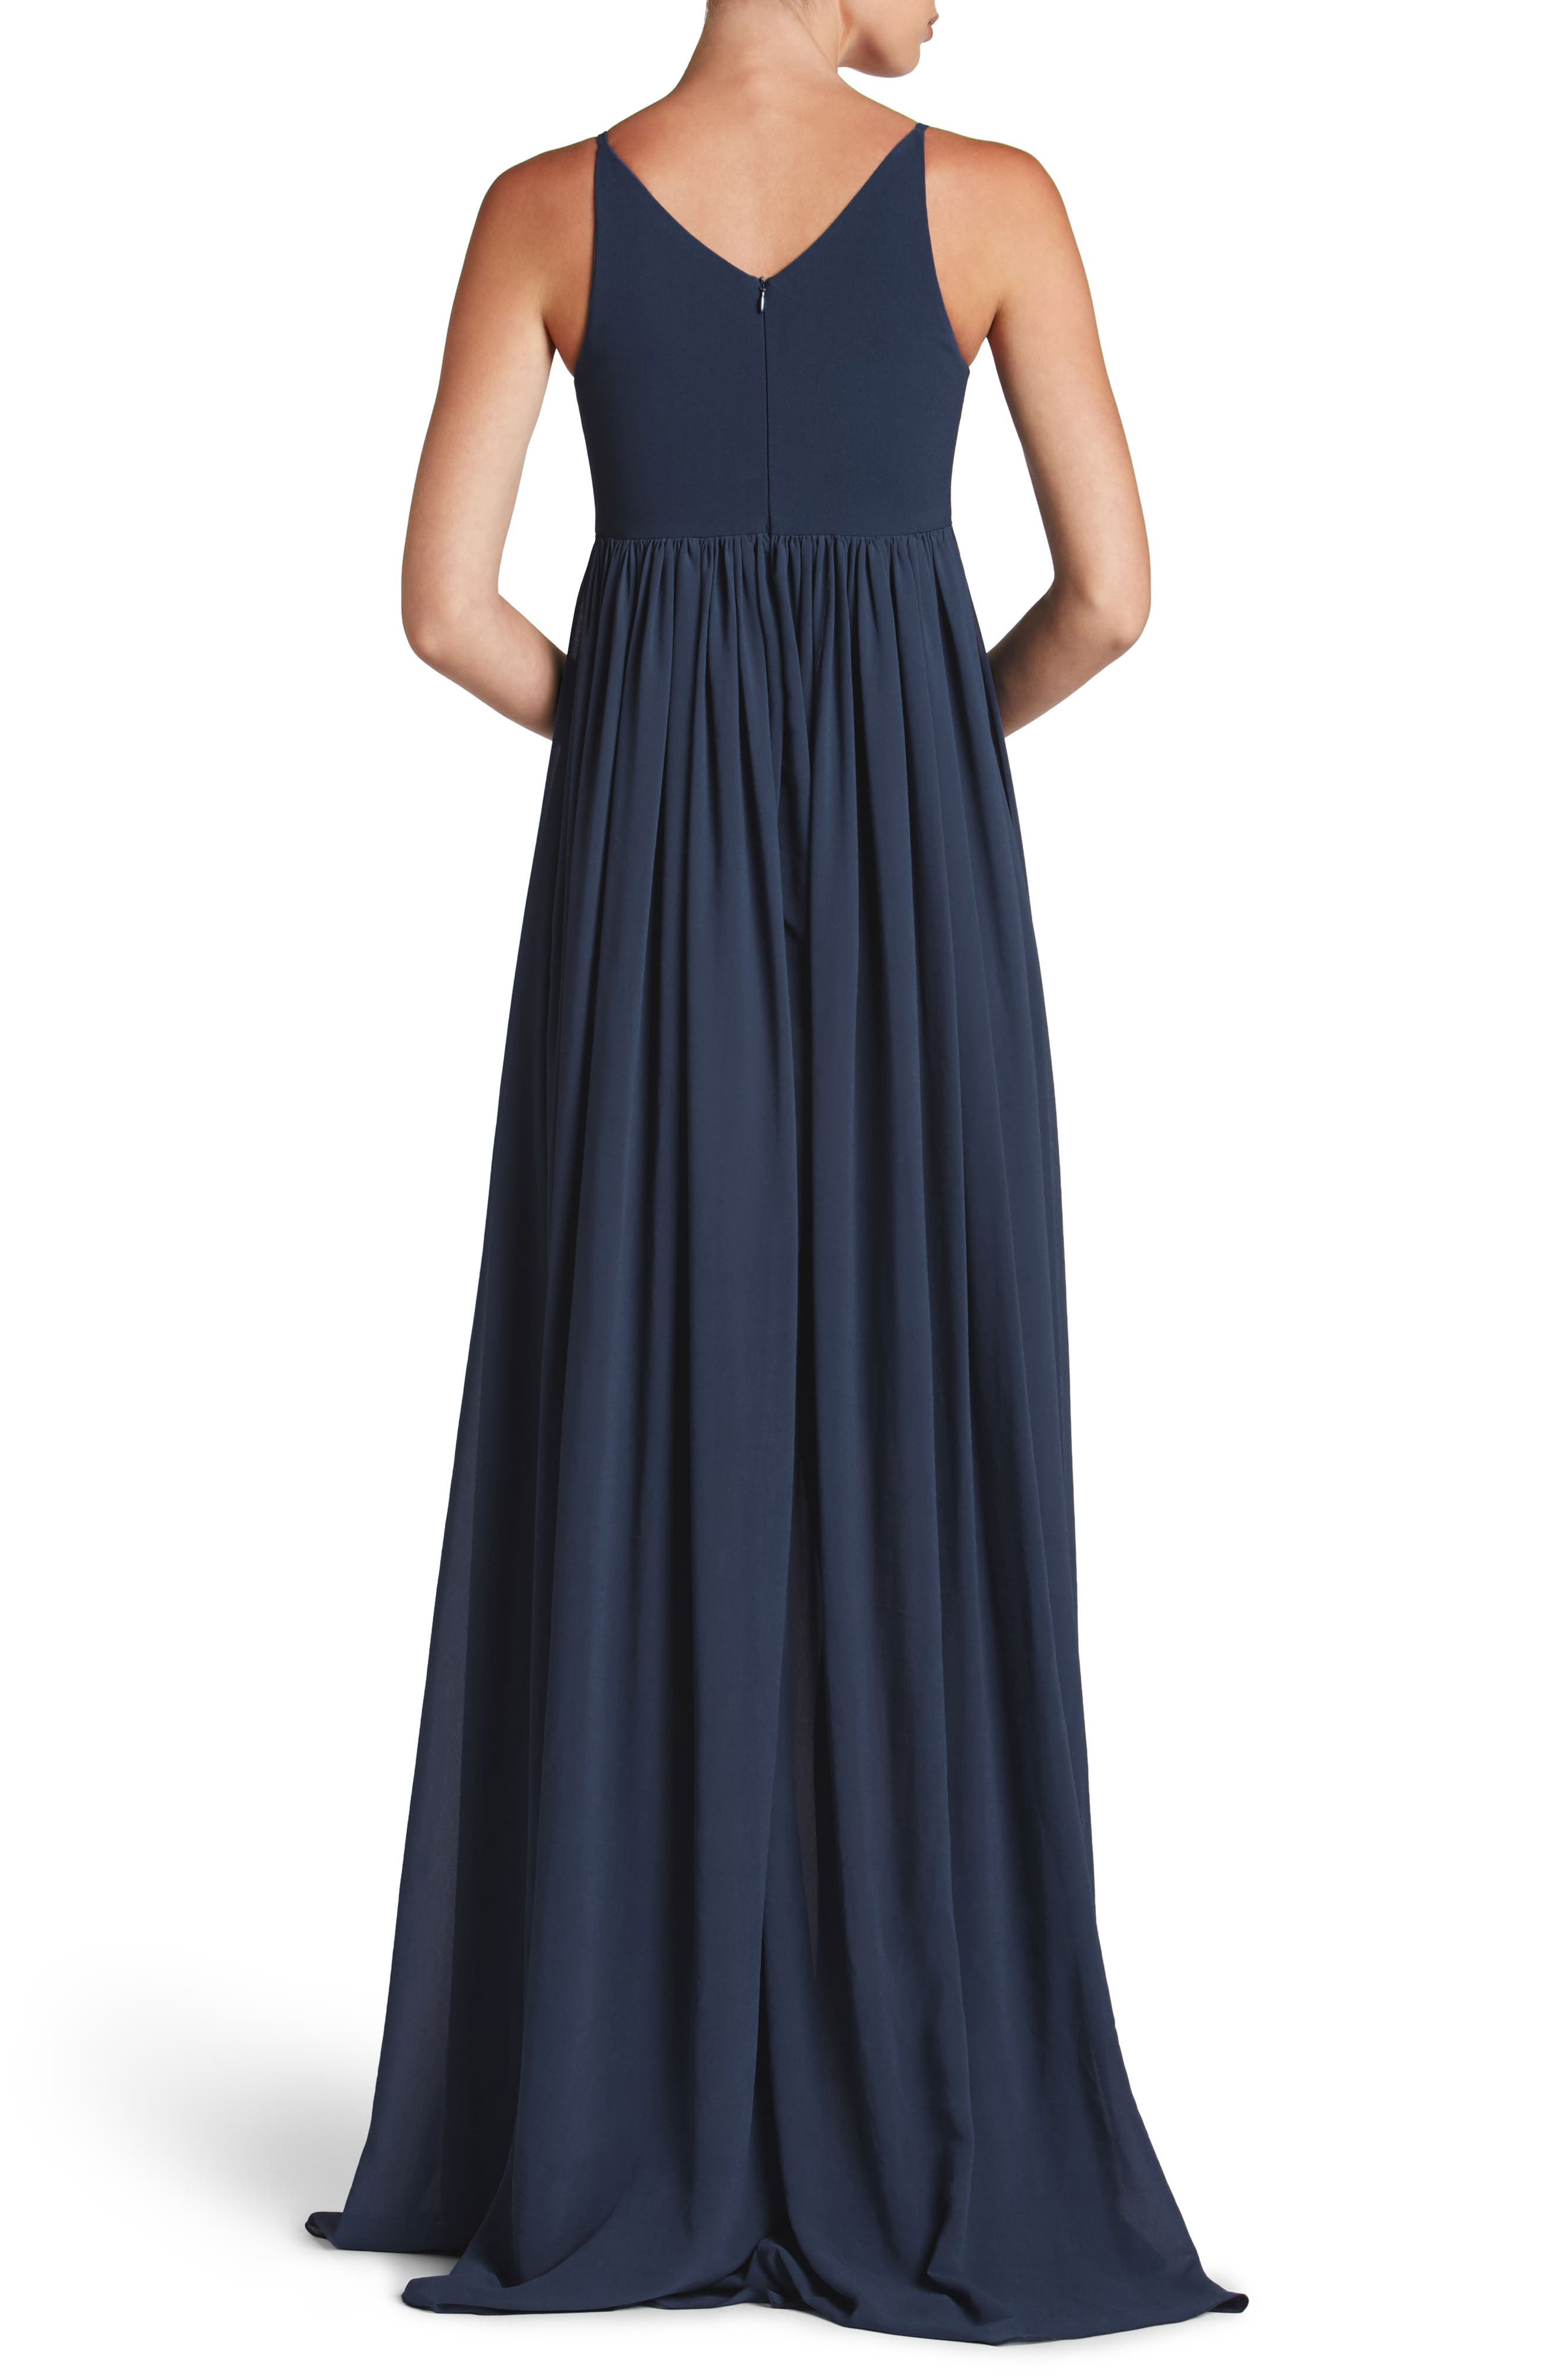 DRESS THE POPULATION, Phoebe Chiffon Gown, Alternate thumbnail 2, color, 456